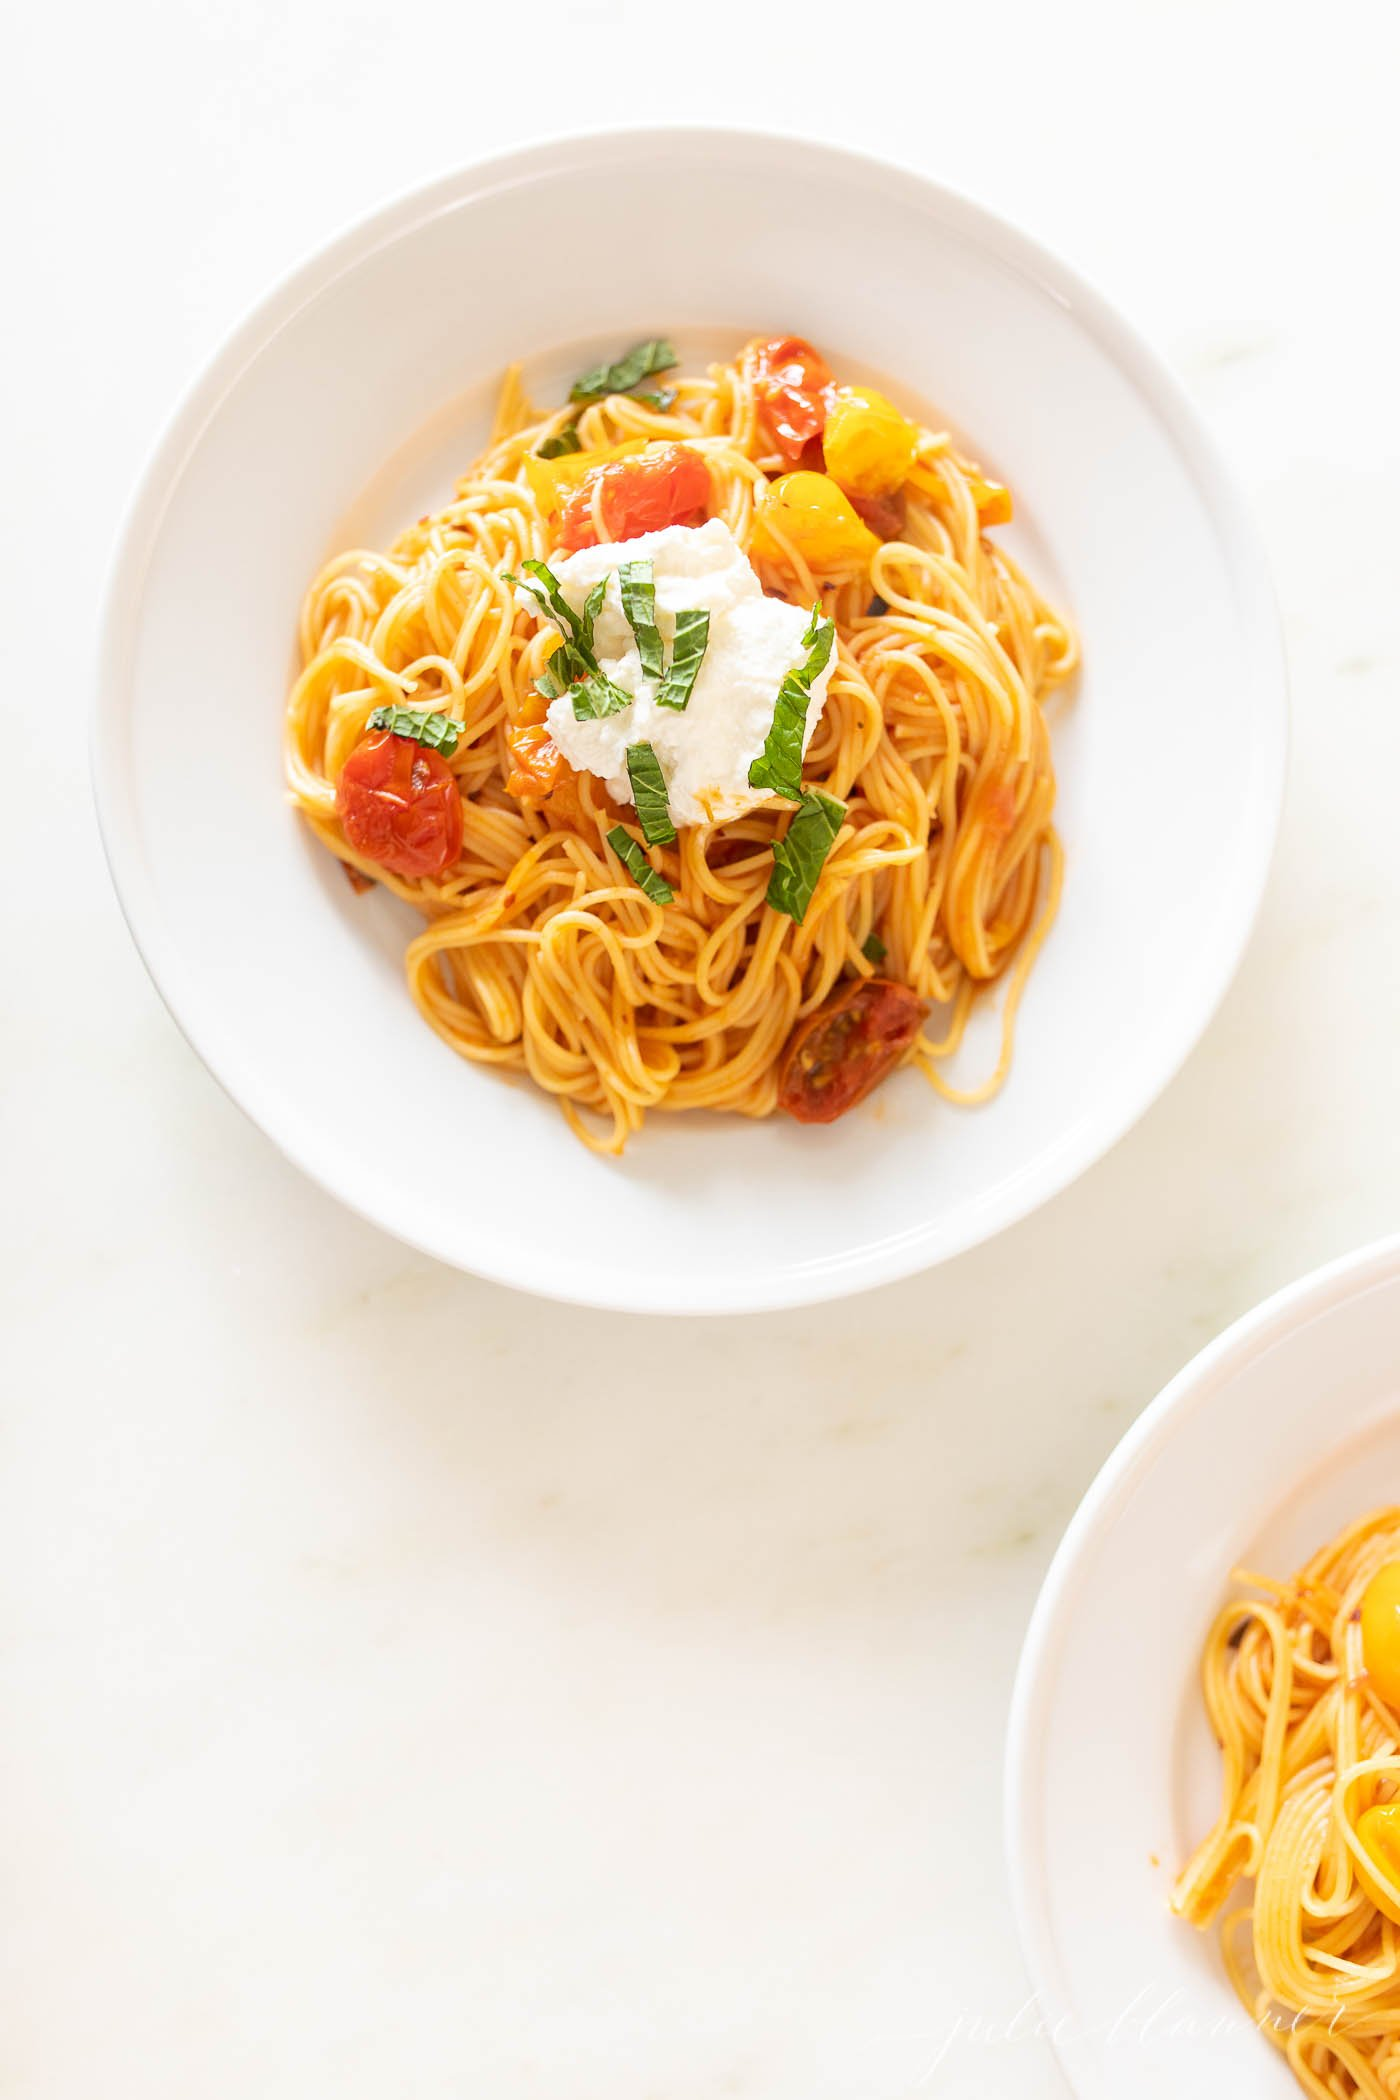 Cherry Tomato pasta on a white plate.